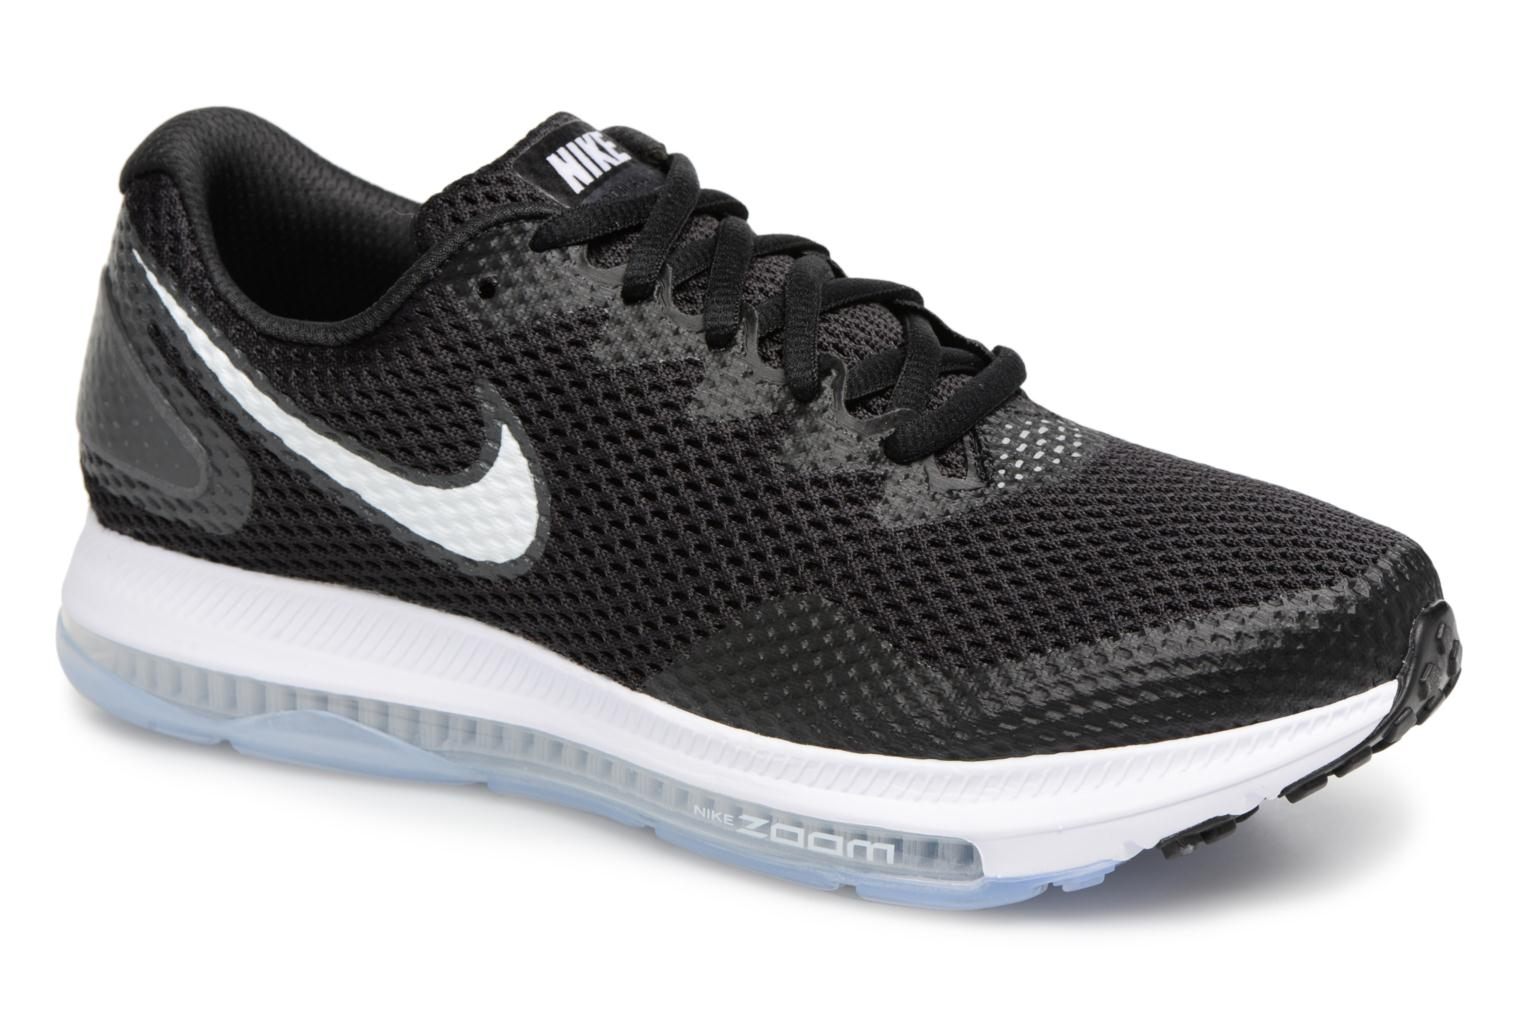 W Nike Zoom All Out Low 2 Black/white-anthracite